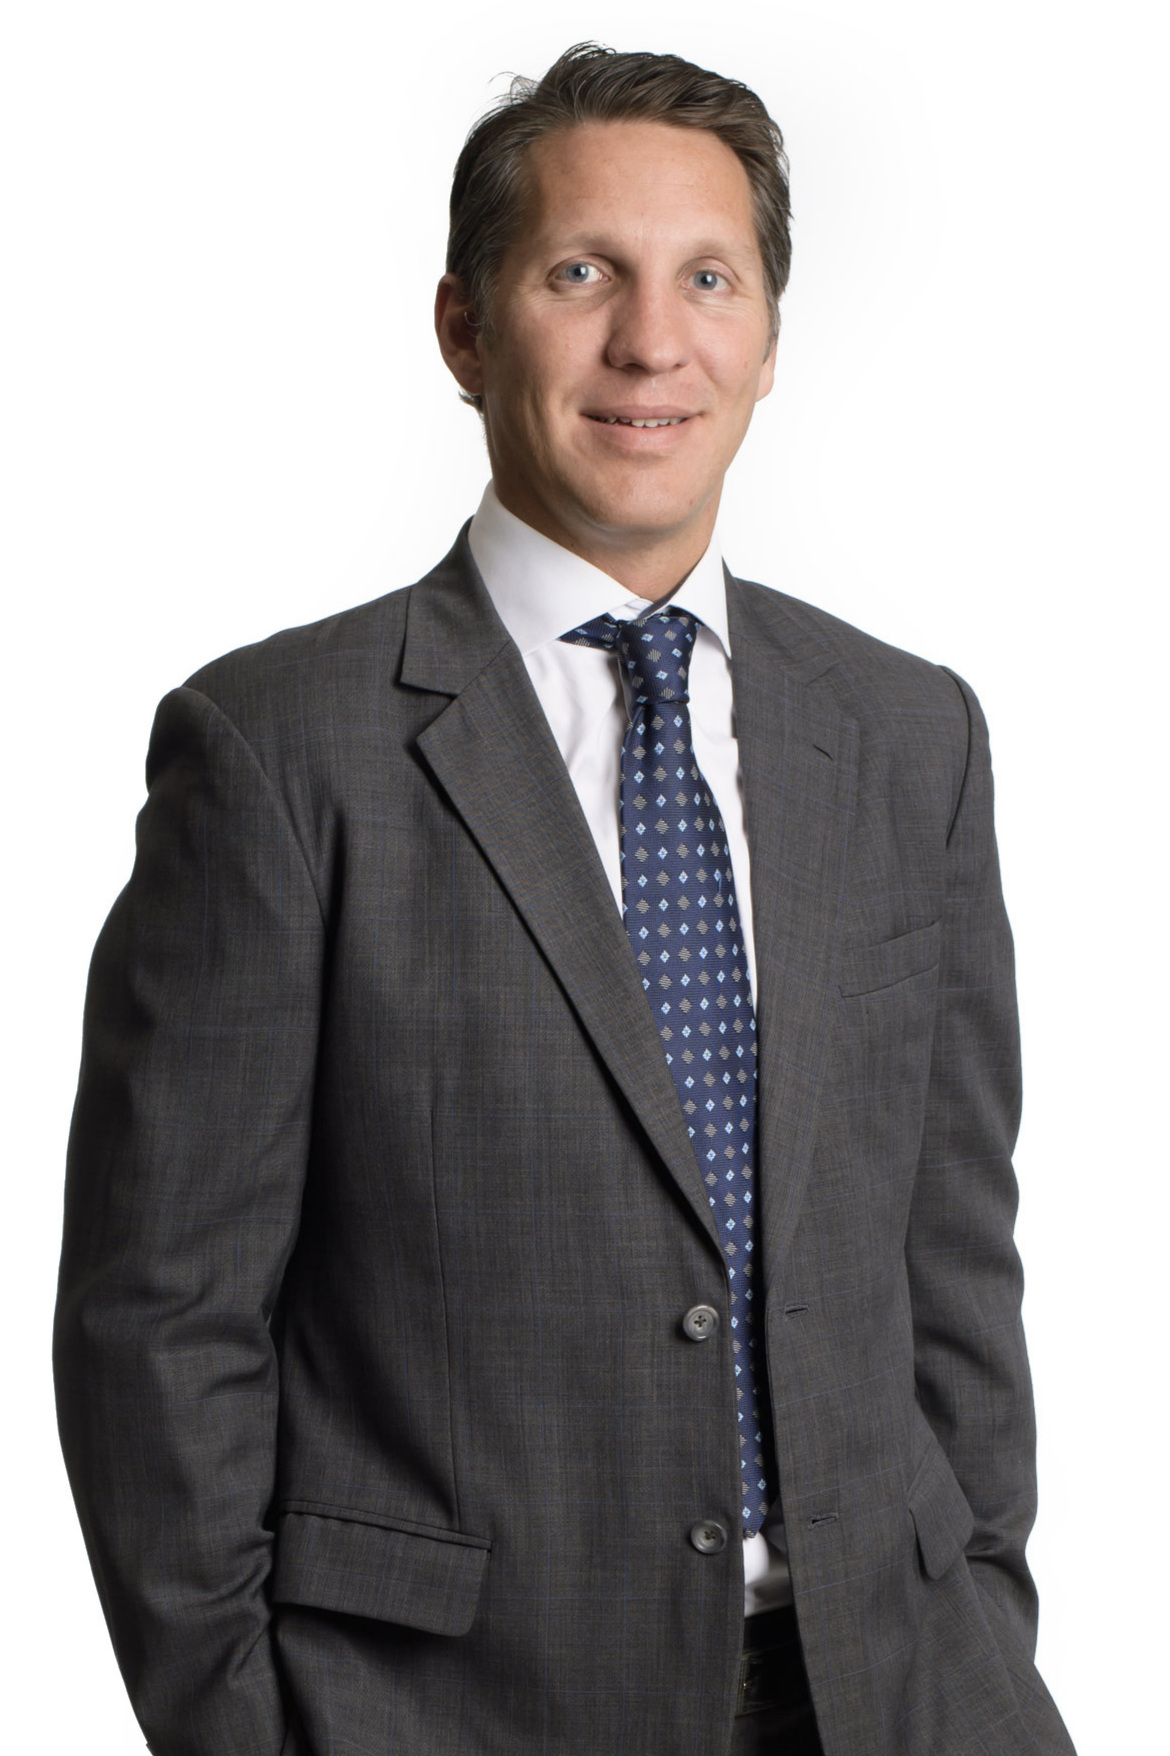 Rob Aarvold, General Manager, Swire Bulk